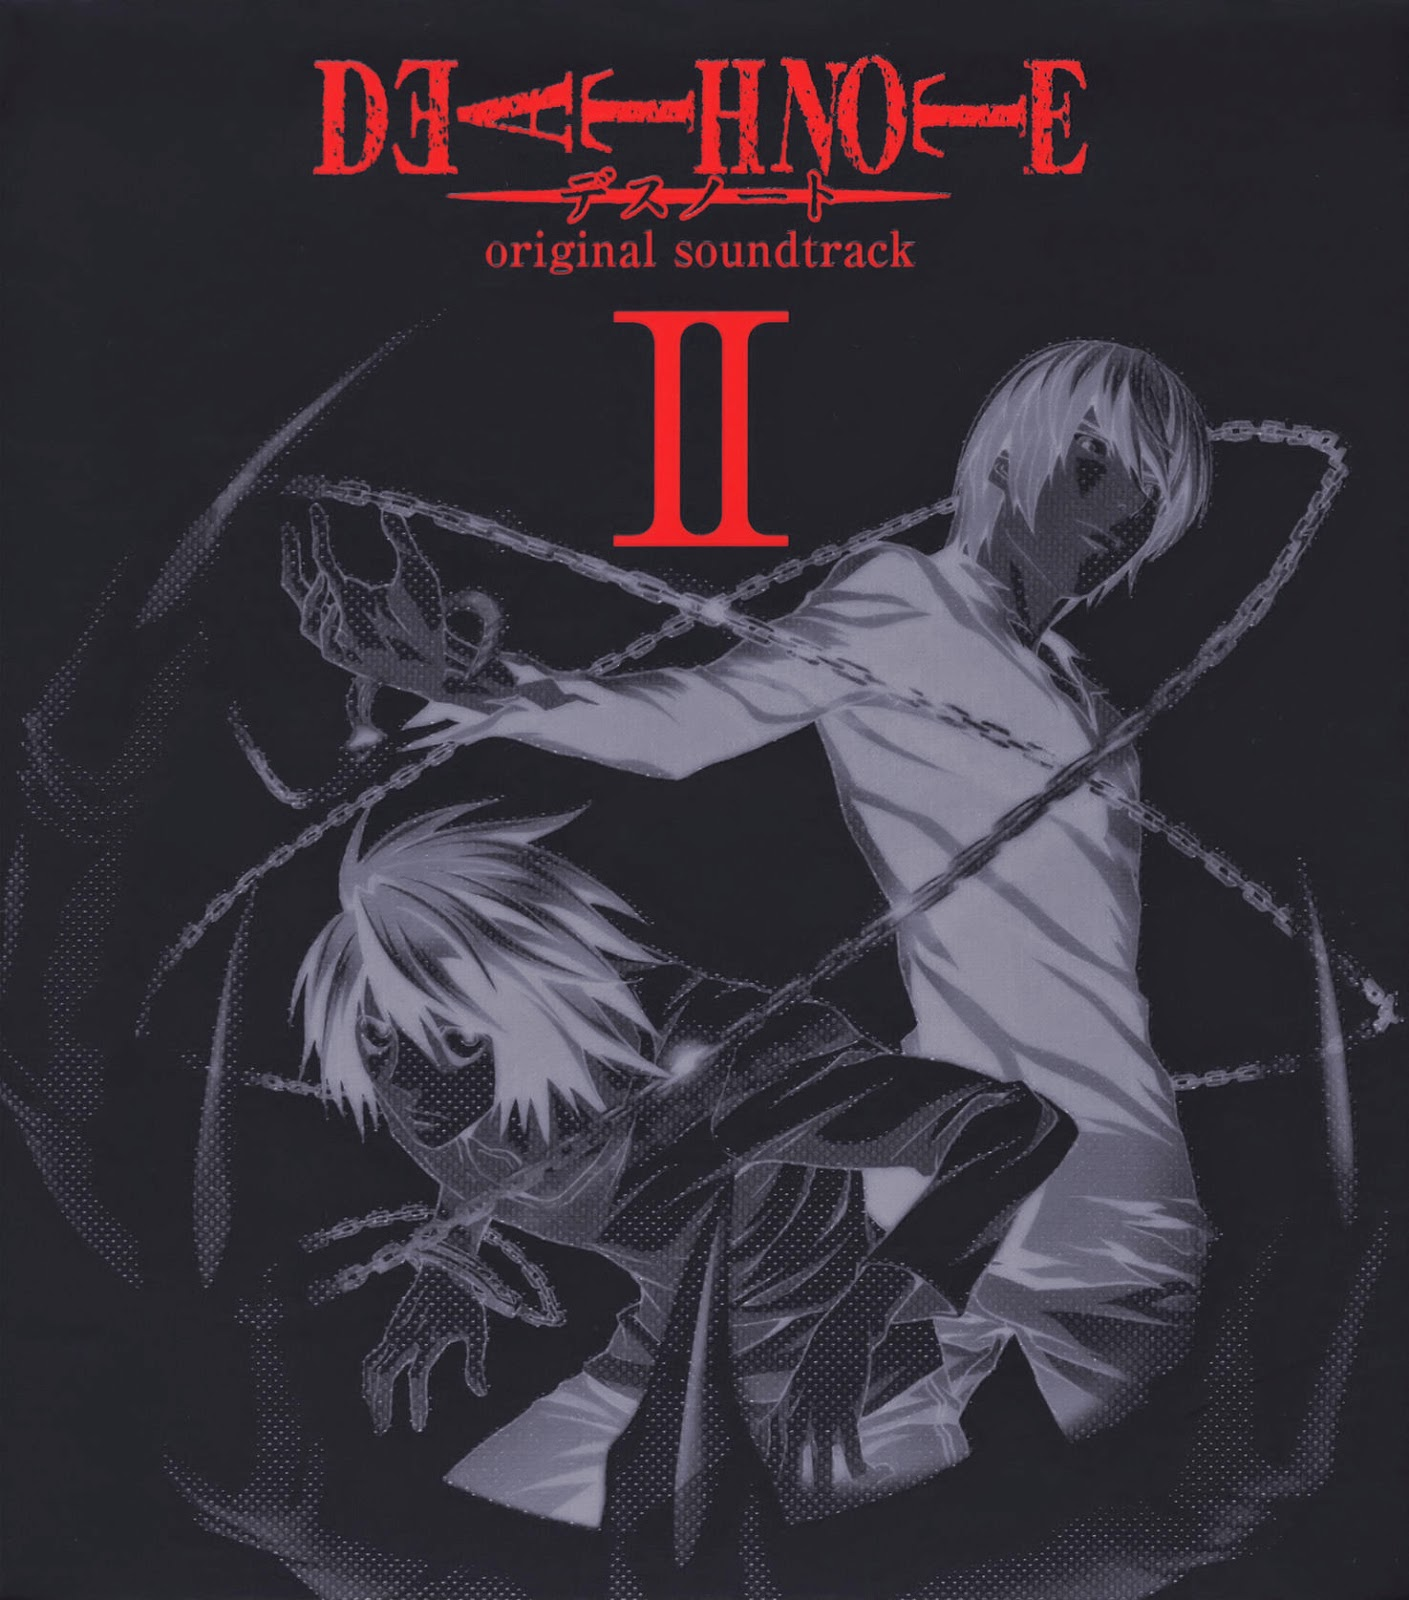 Low of solipsism death note download anime